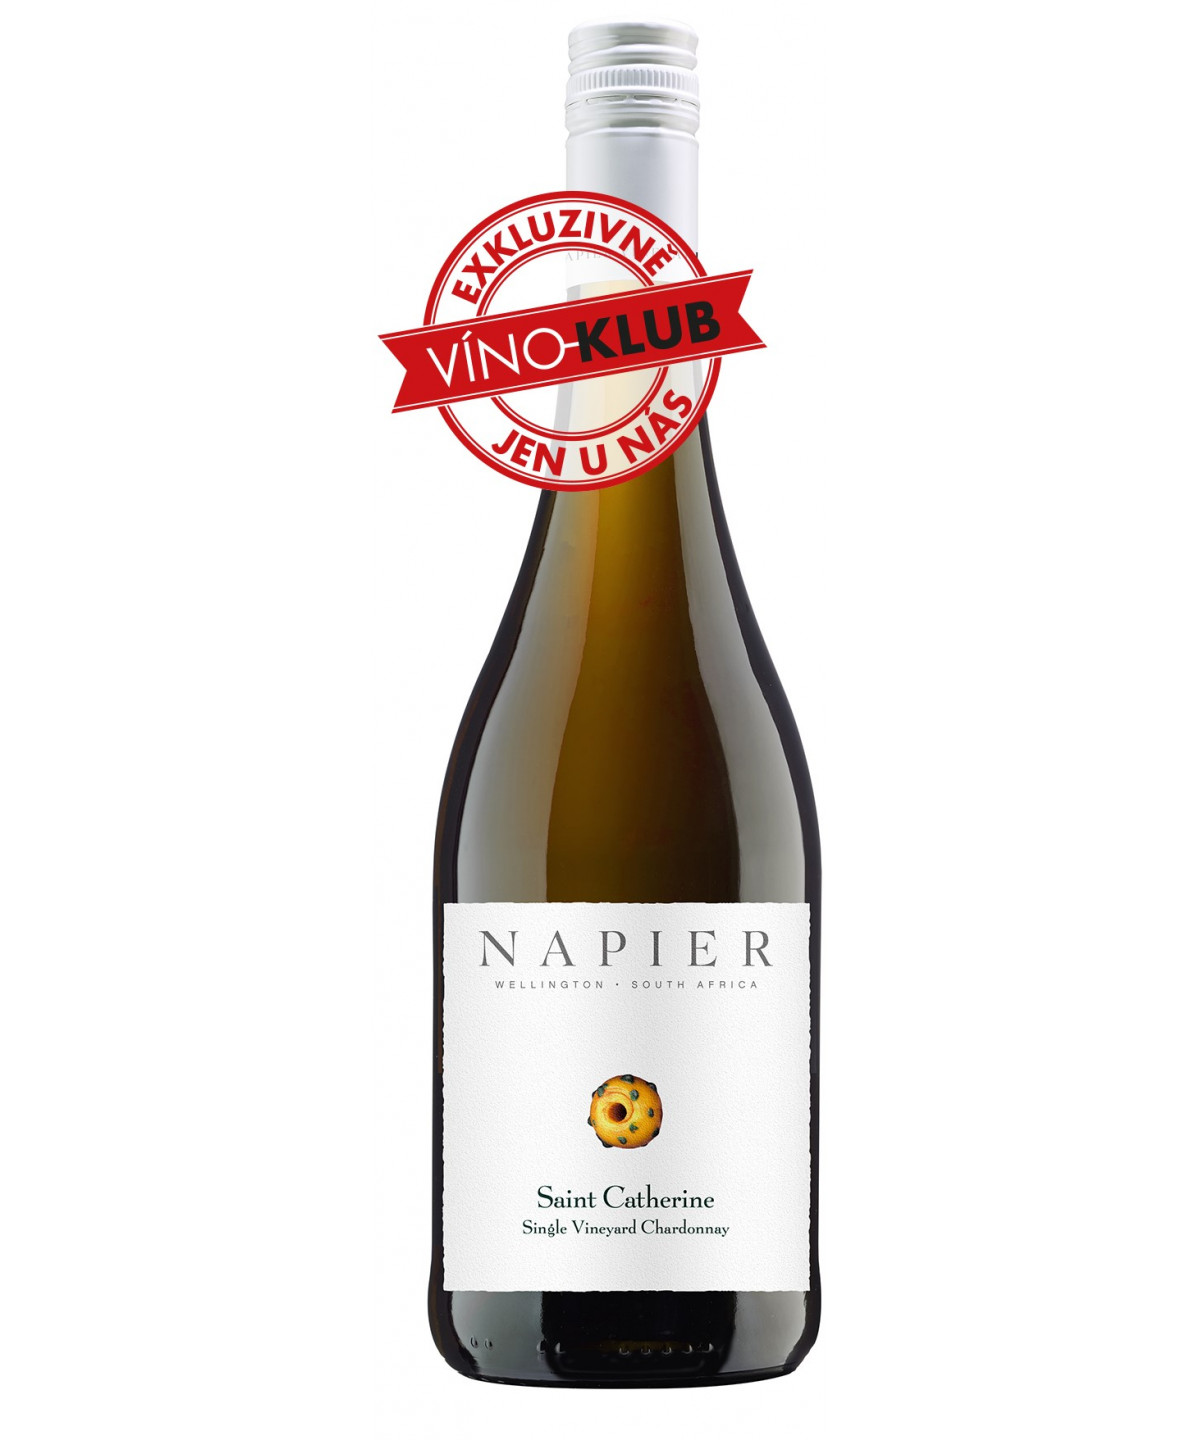 Napier - Single Vineyard - Chardonnay - St. Catherine